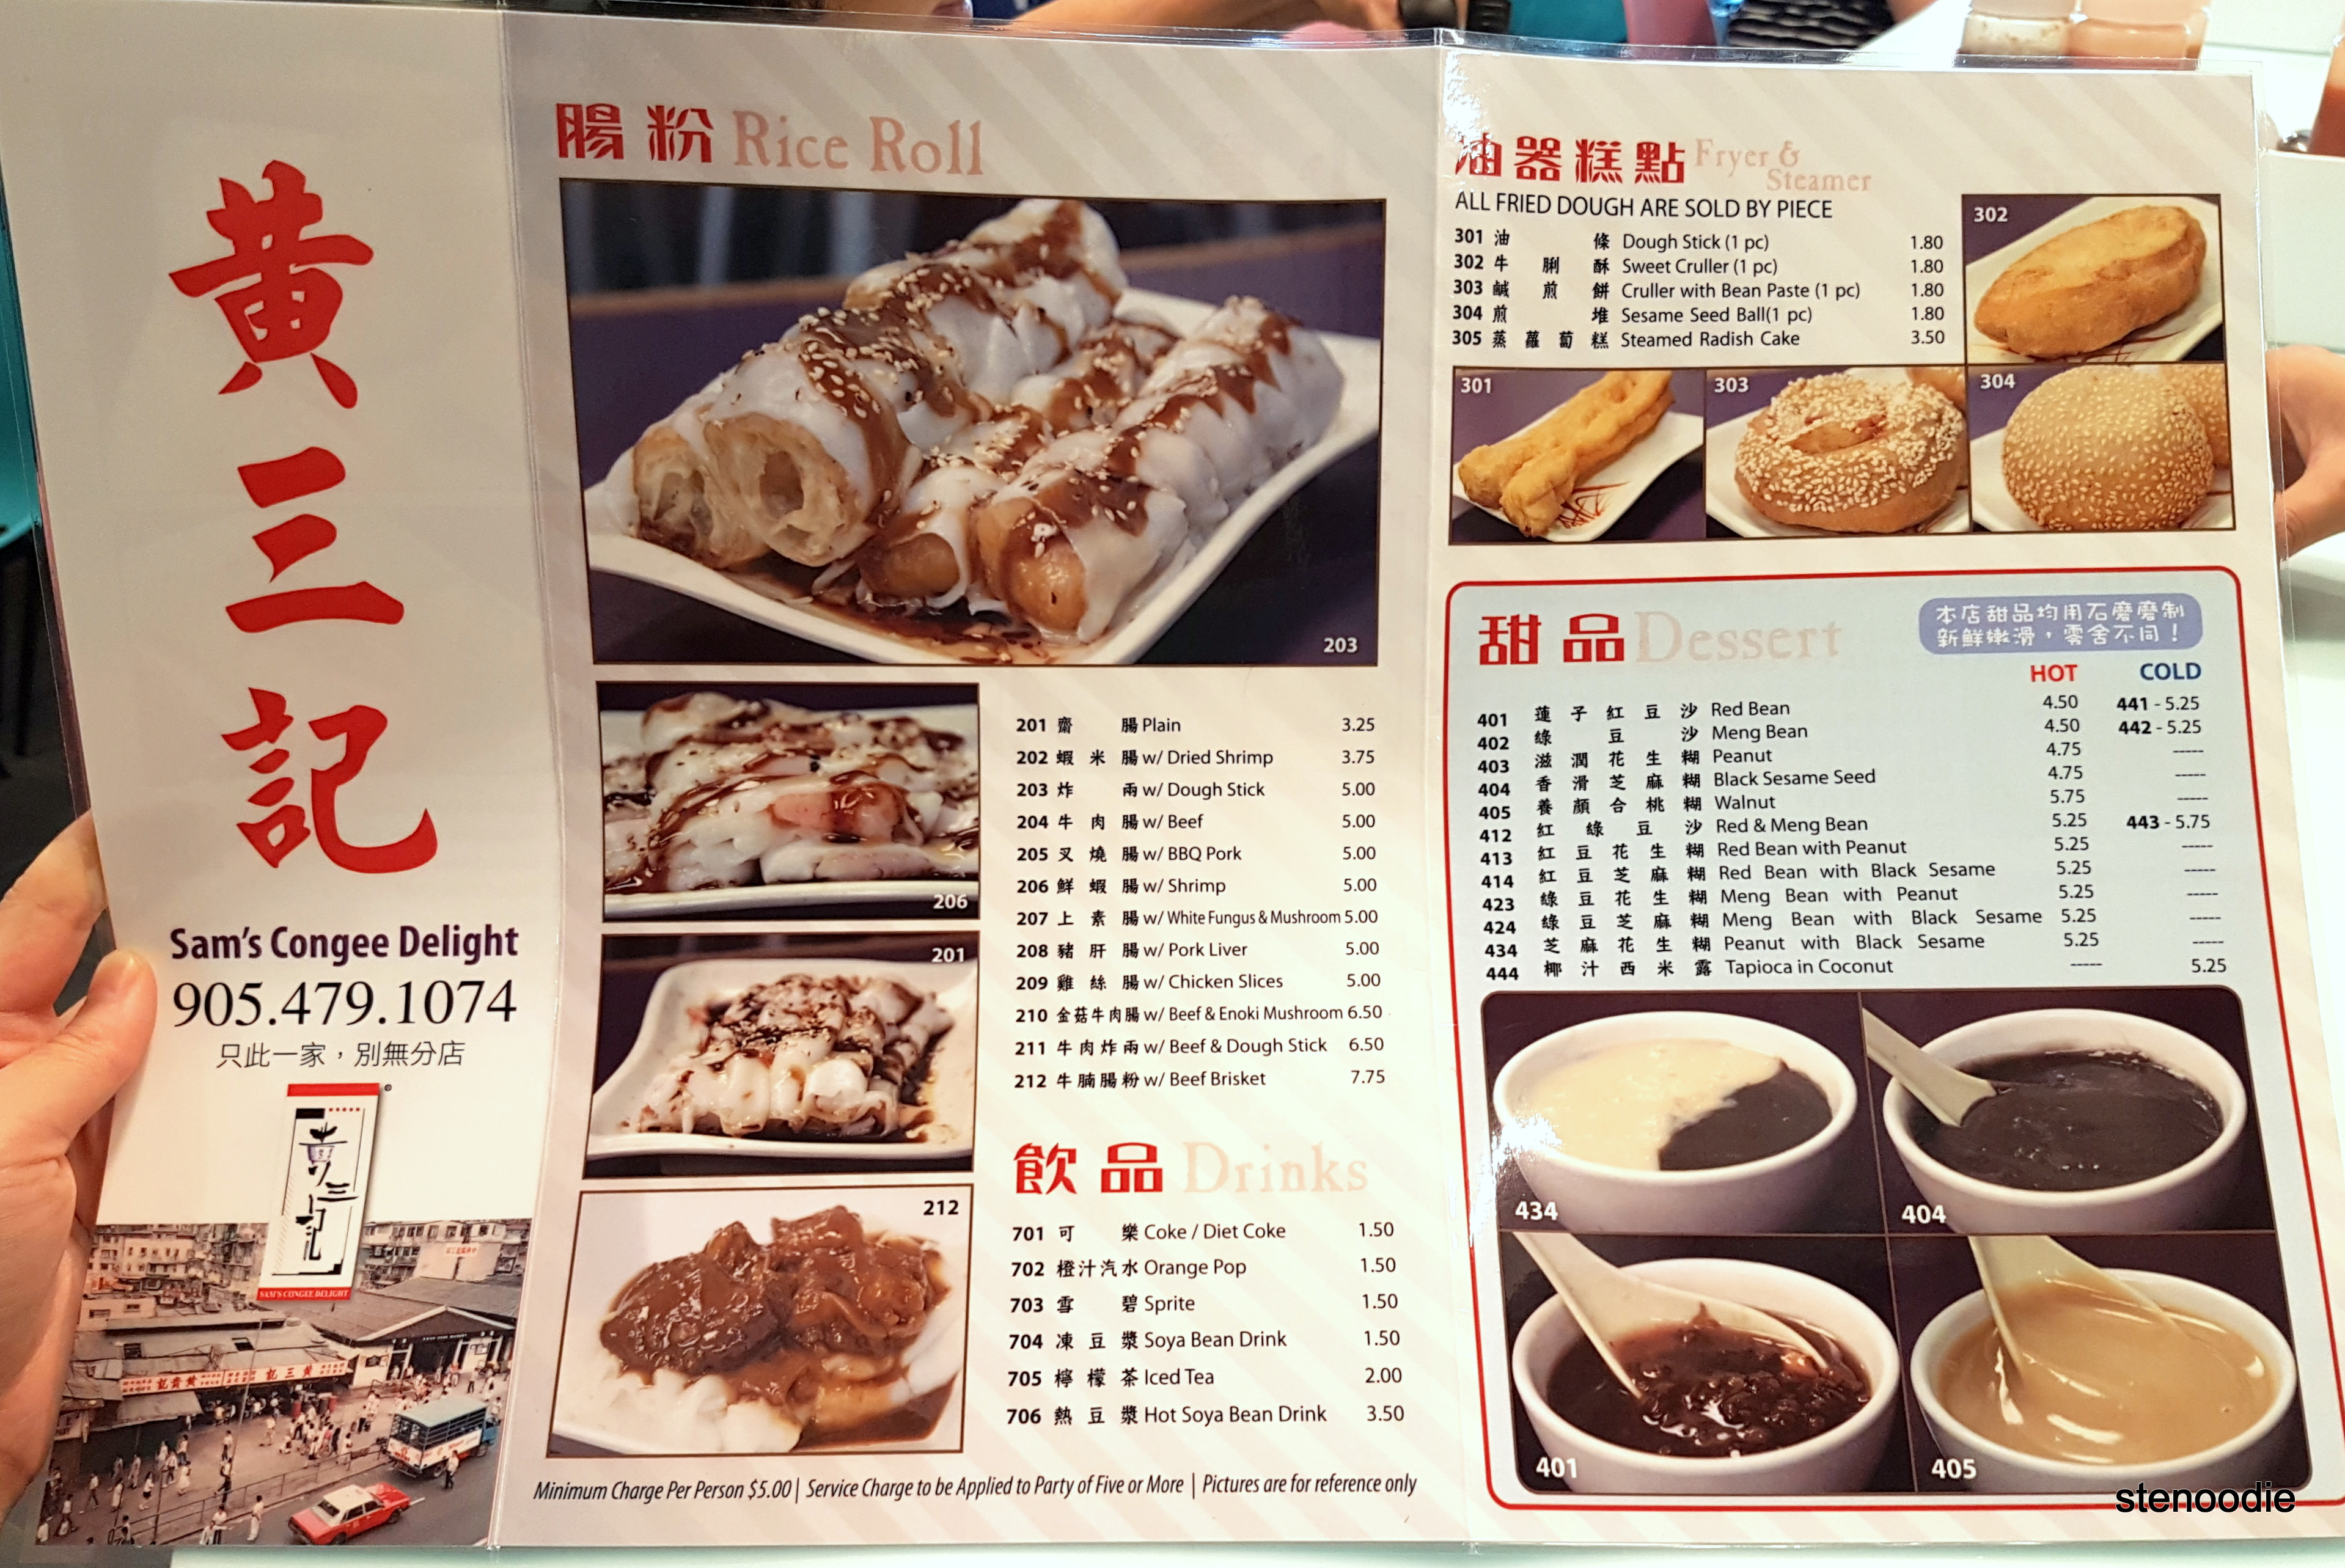 Sam's Congee Delight menu and prices